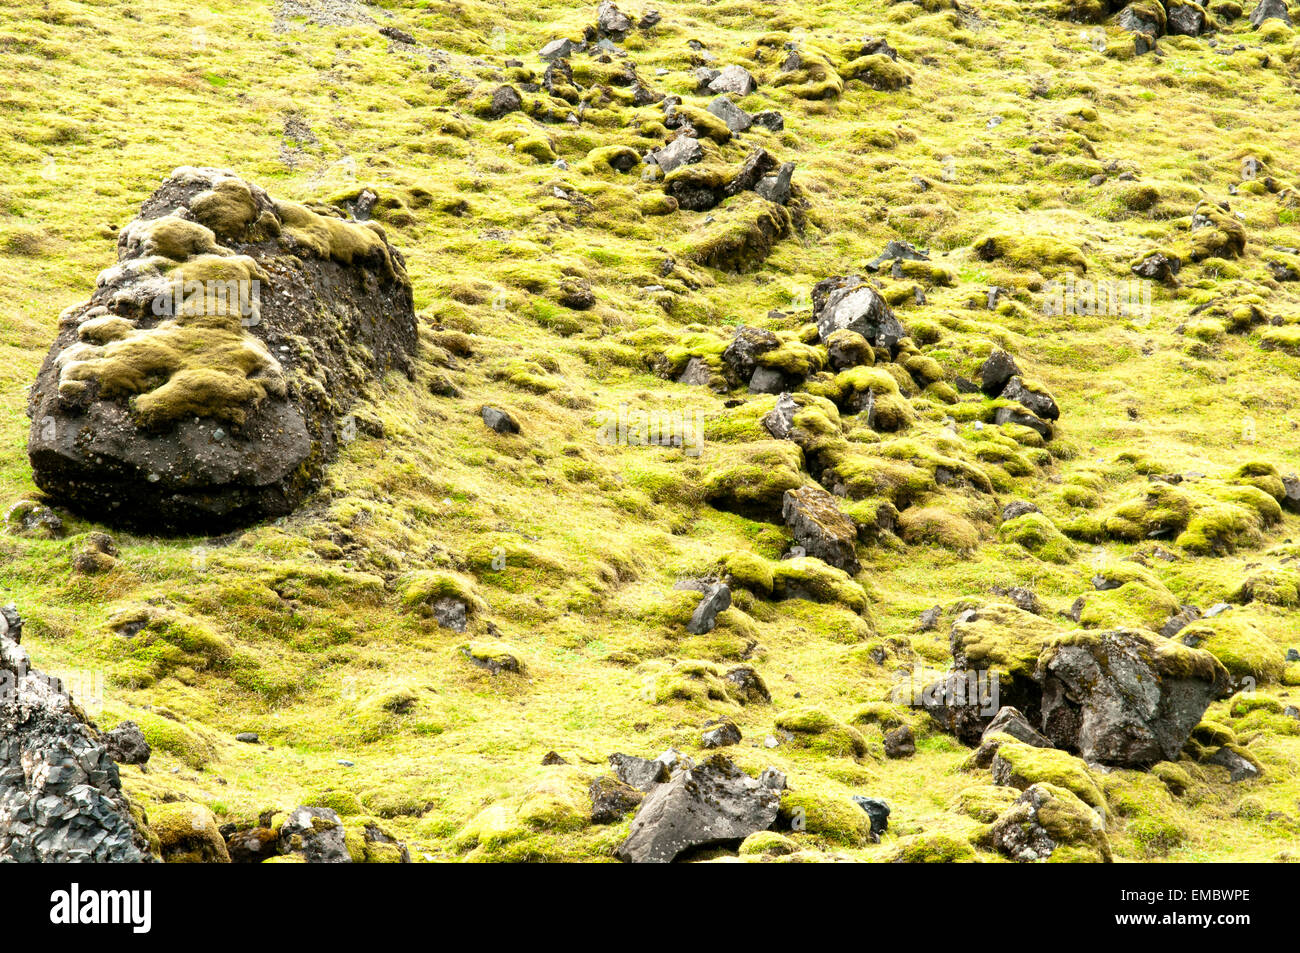 Lava field covered in green moss, South Iceland, Iceland - Stock Image